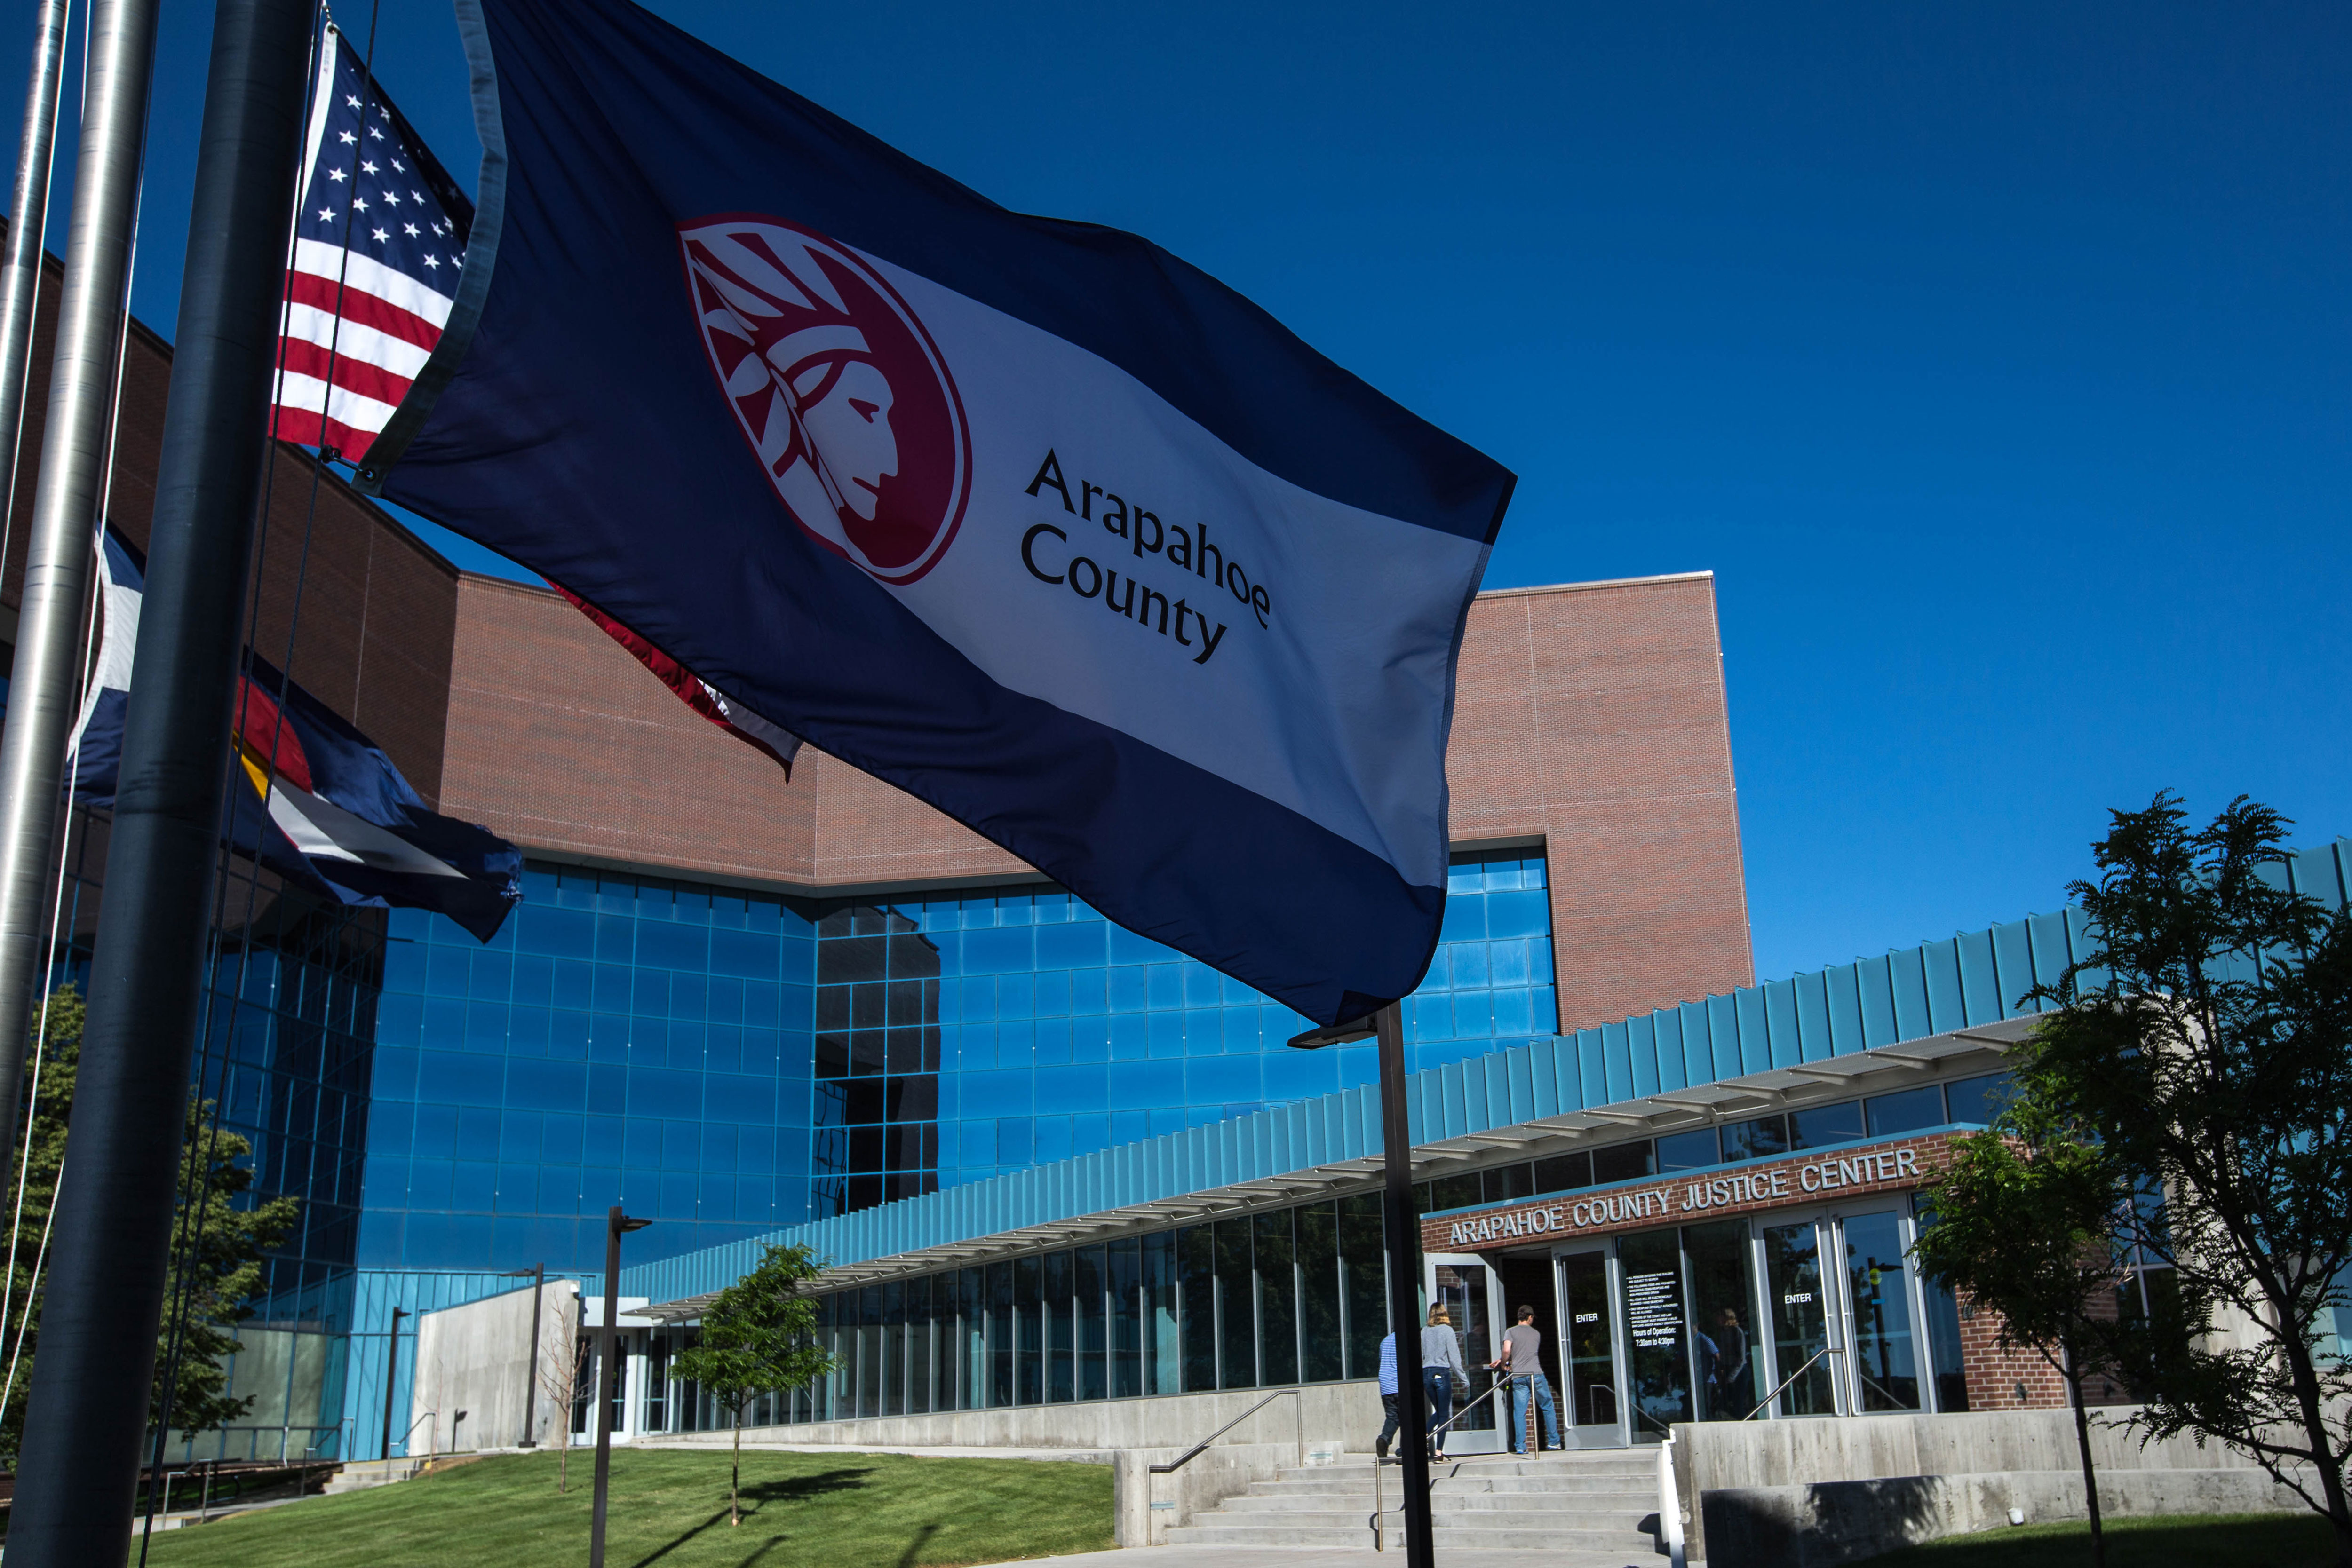 Photo: Arapahoe County Justice Center 1 | Flags & Main Entrance - HVD